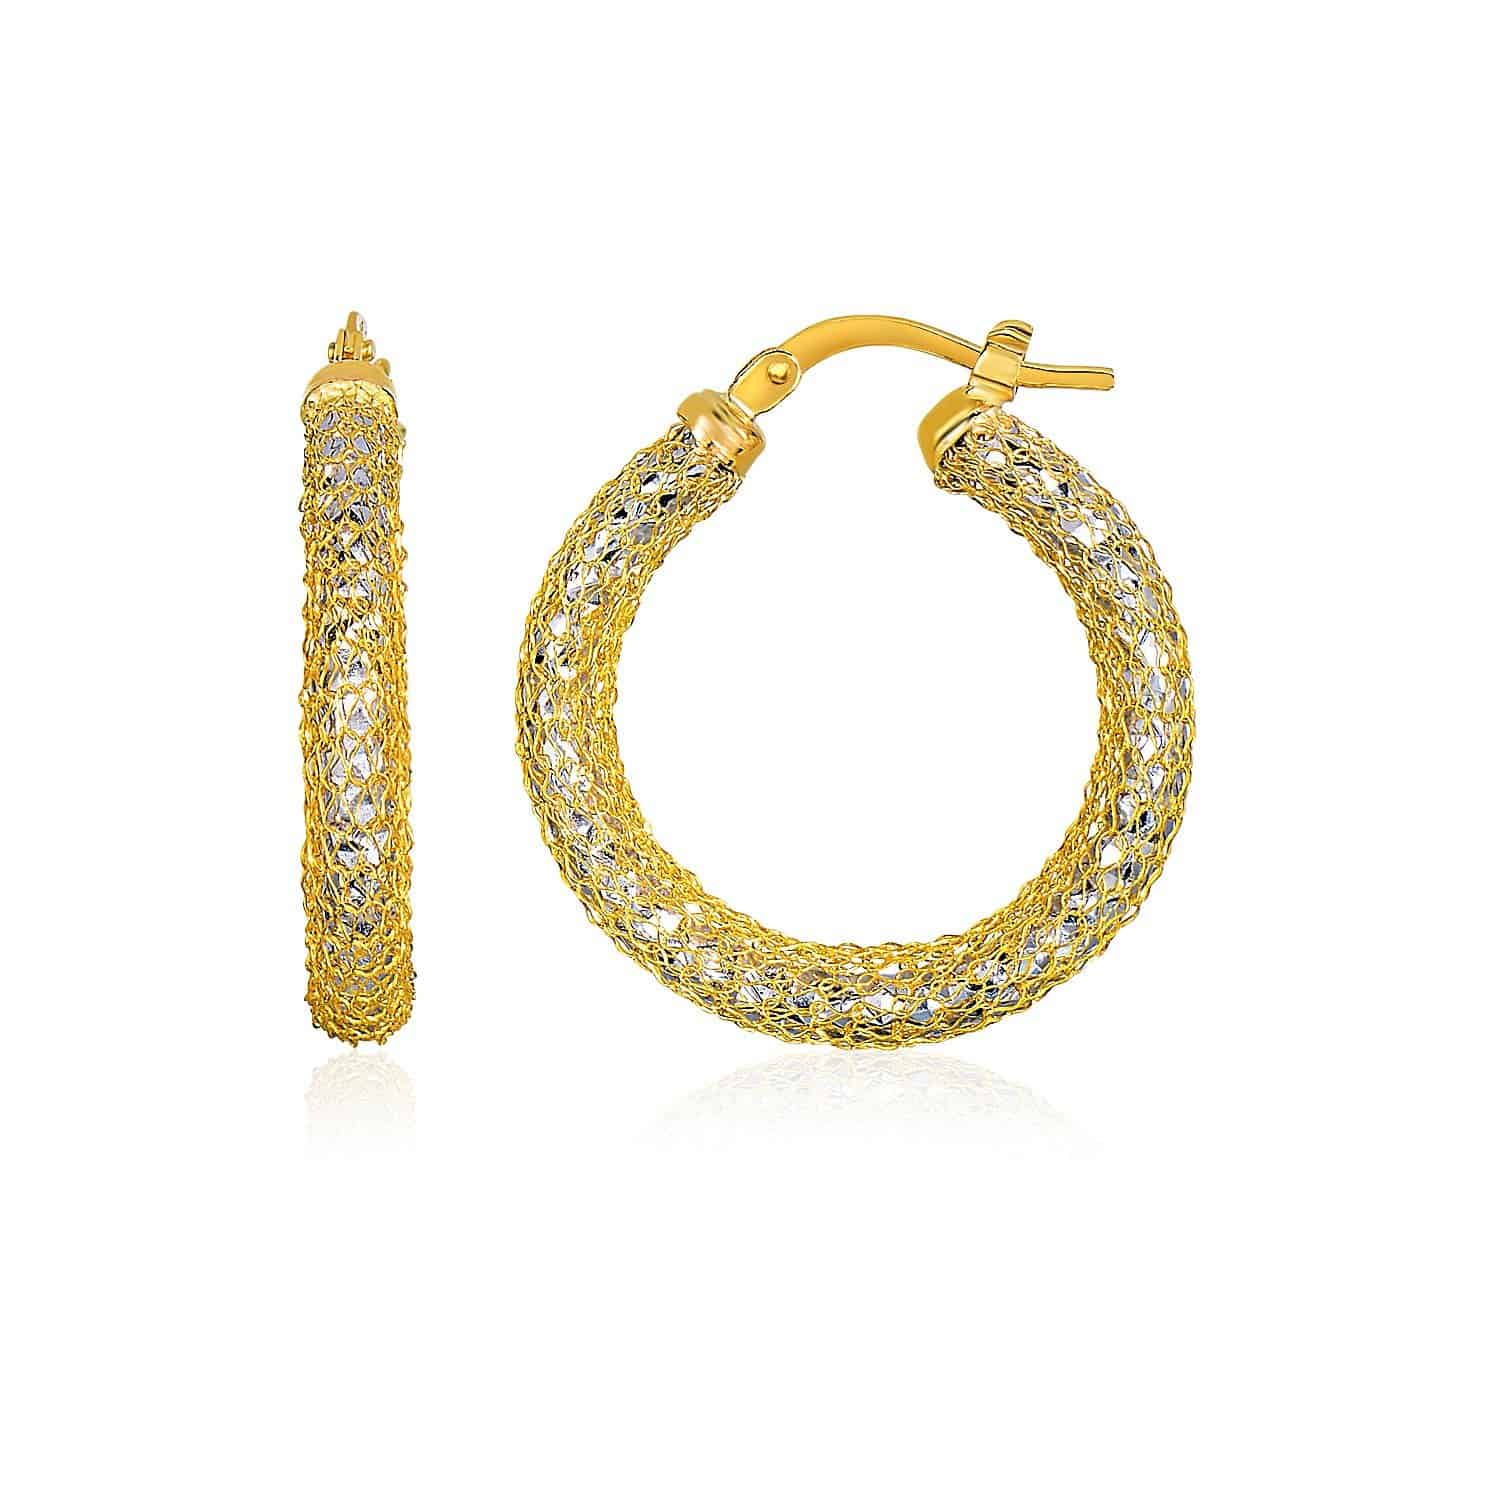 14k Two-Tone Yellow and White Gold Sparkle Texture Hoop Earrings